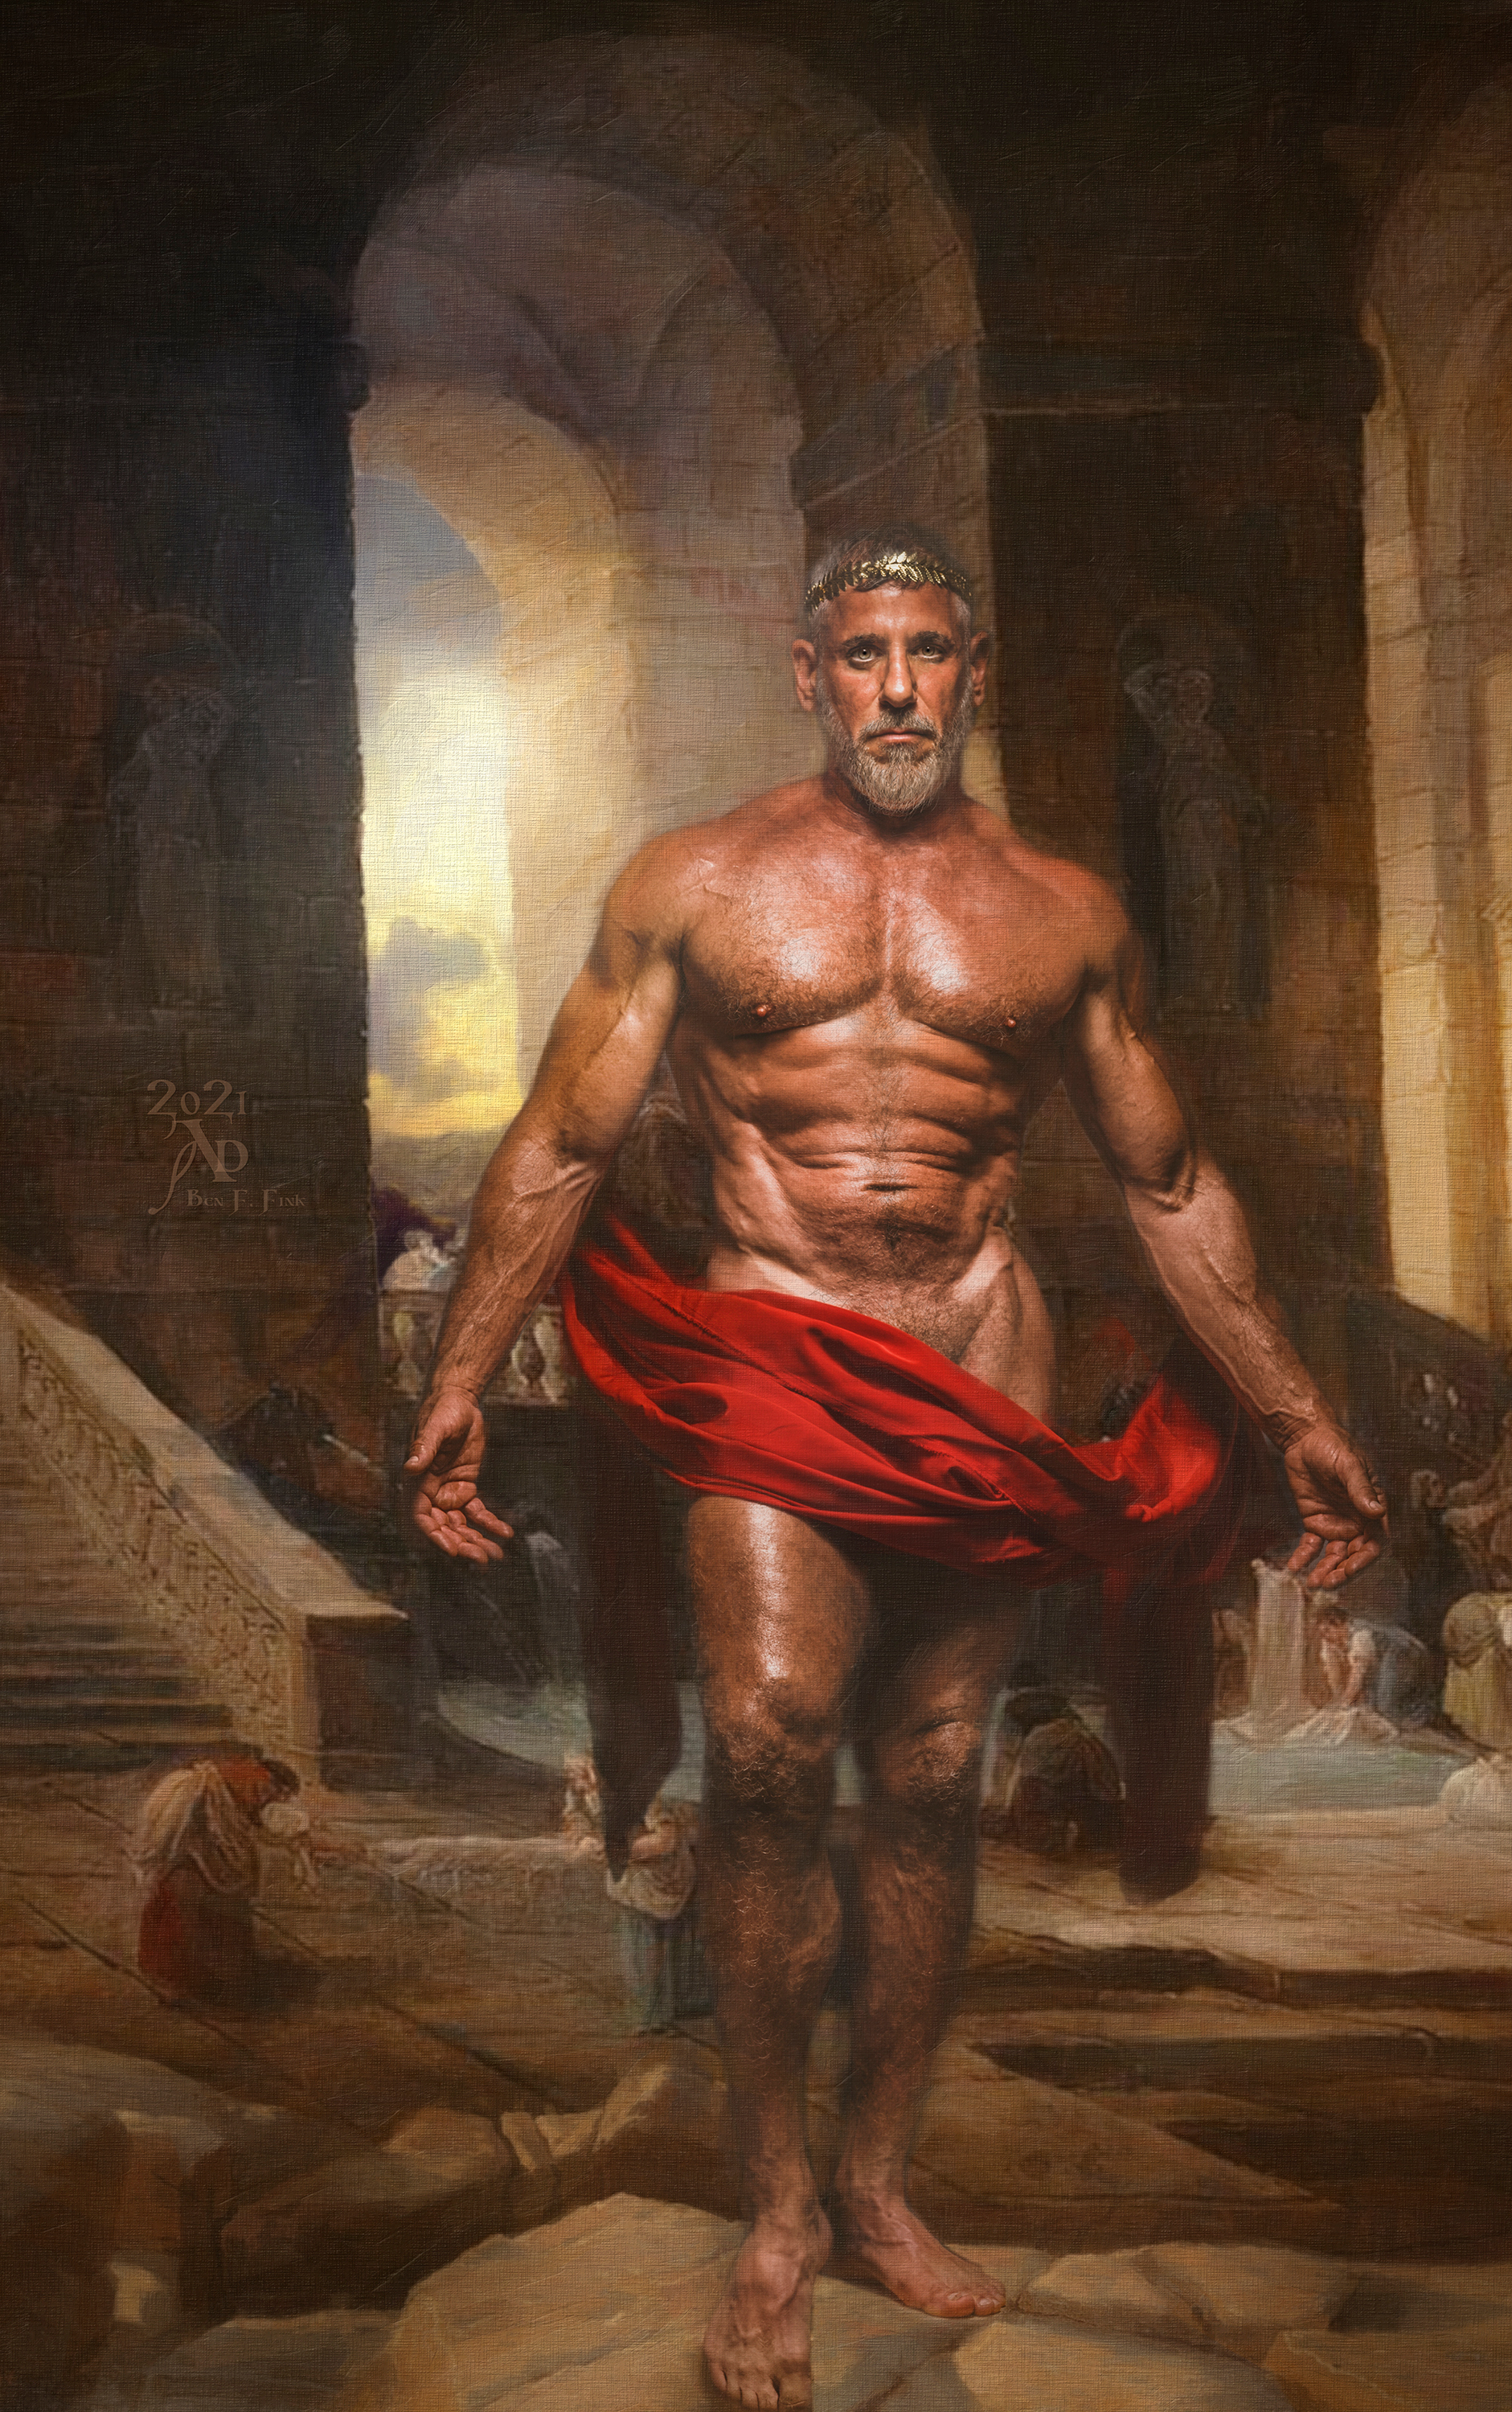 Zeus and the baths of mount olympus limited edition gkgc6z